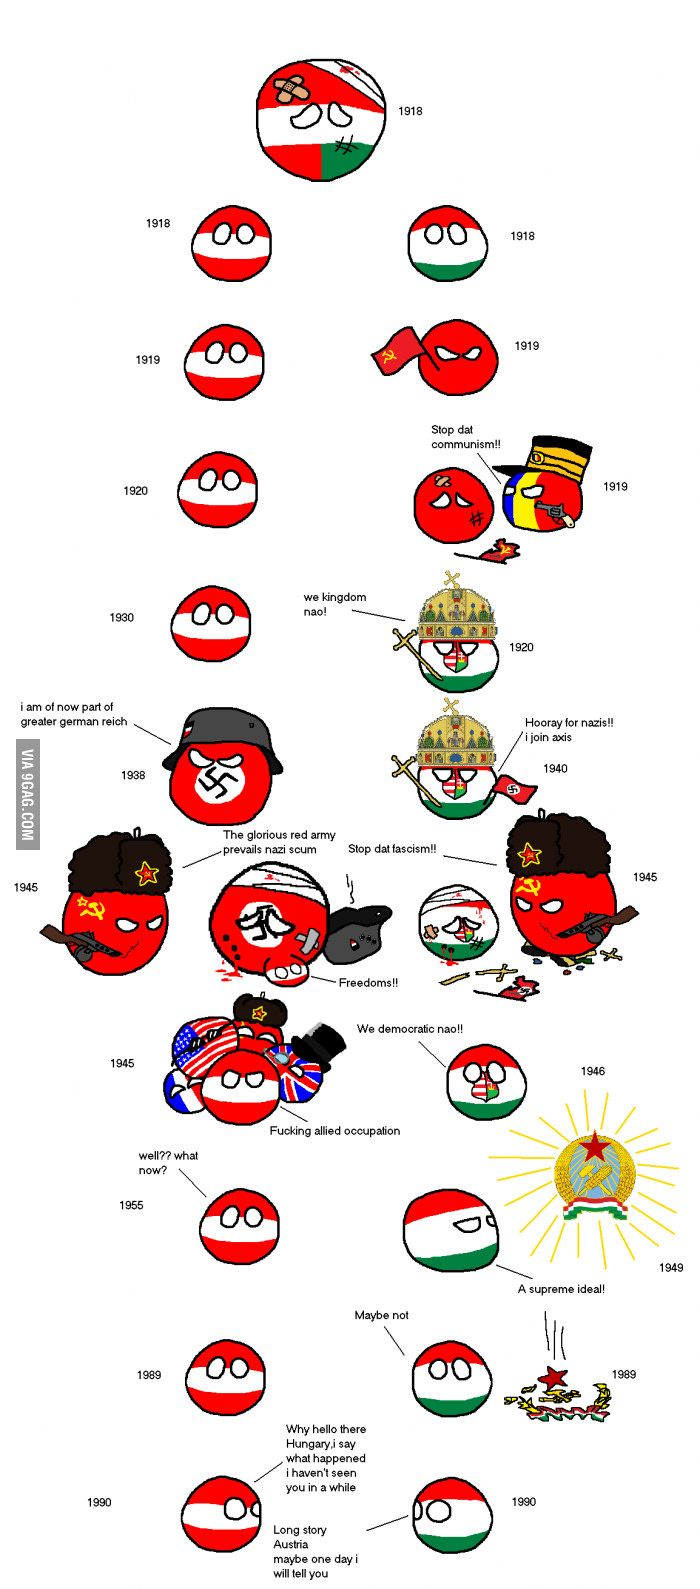 Short history of Austria and Hungary after WW 1